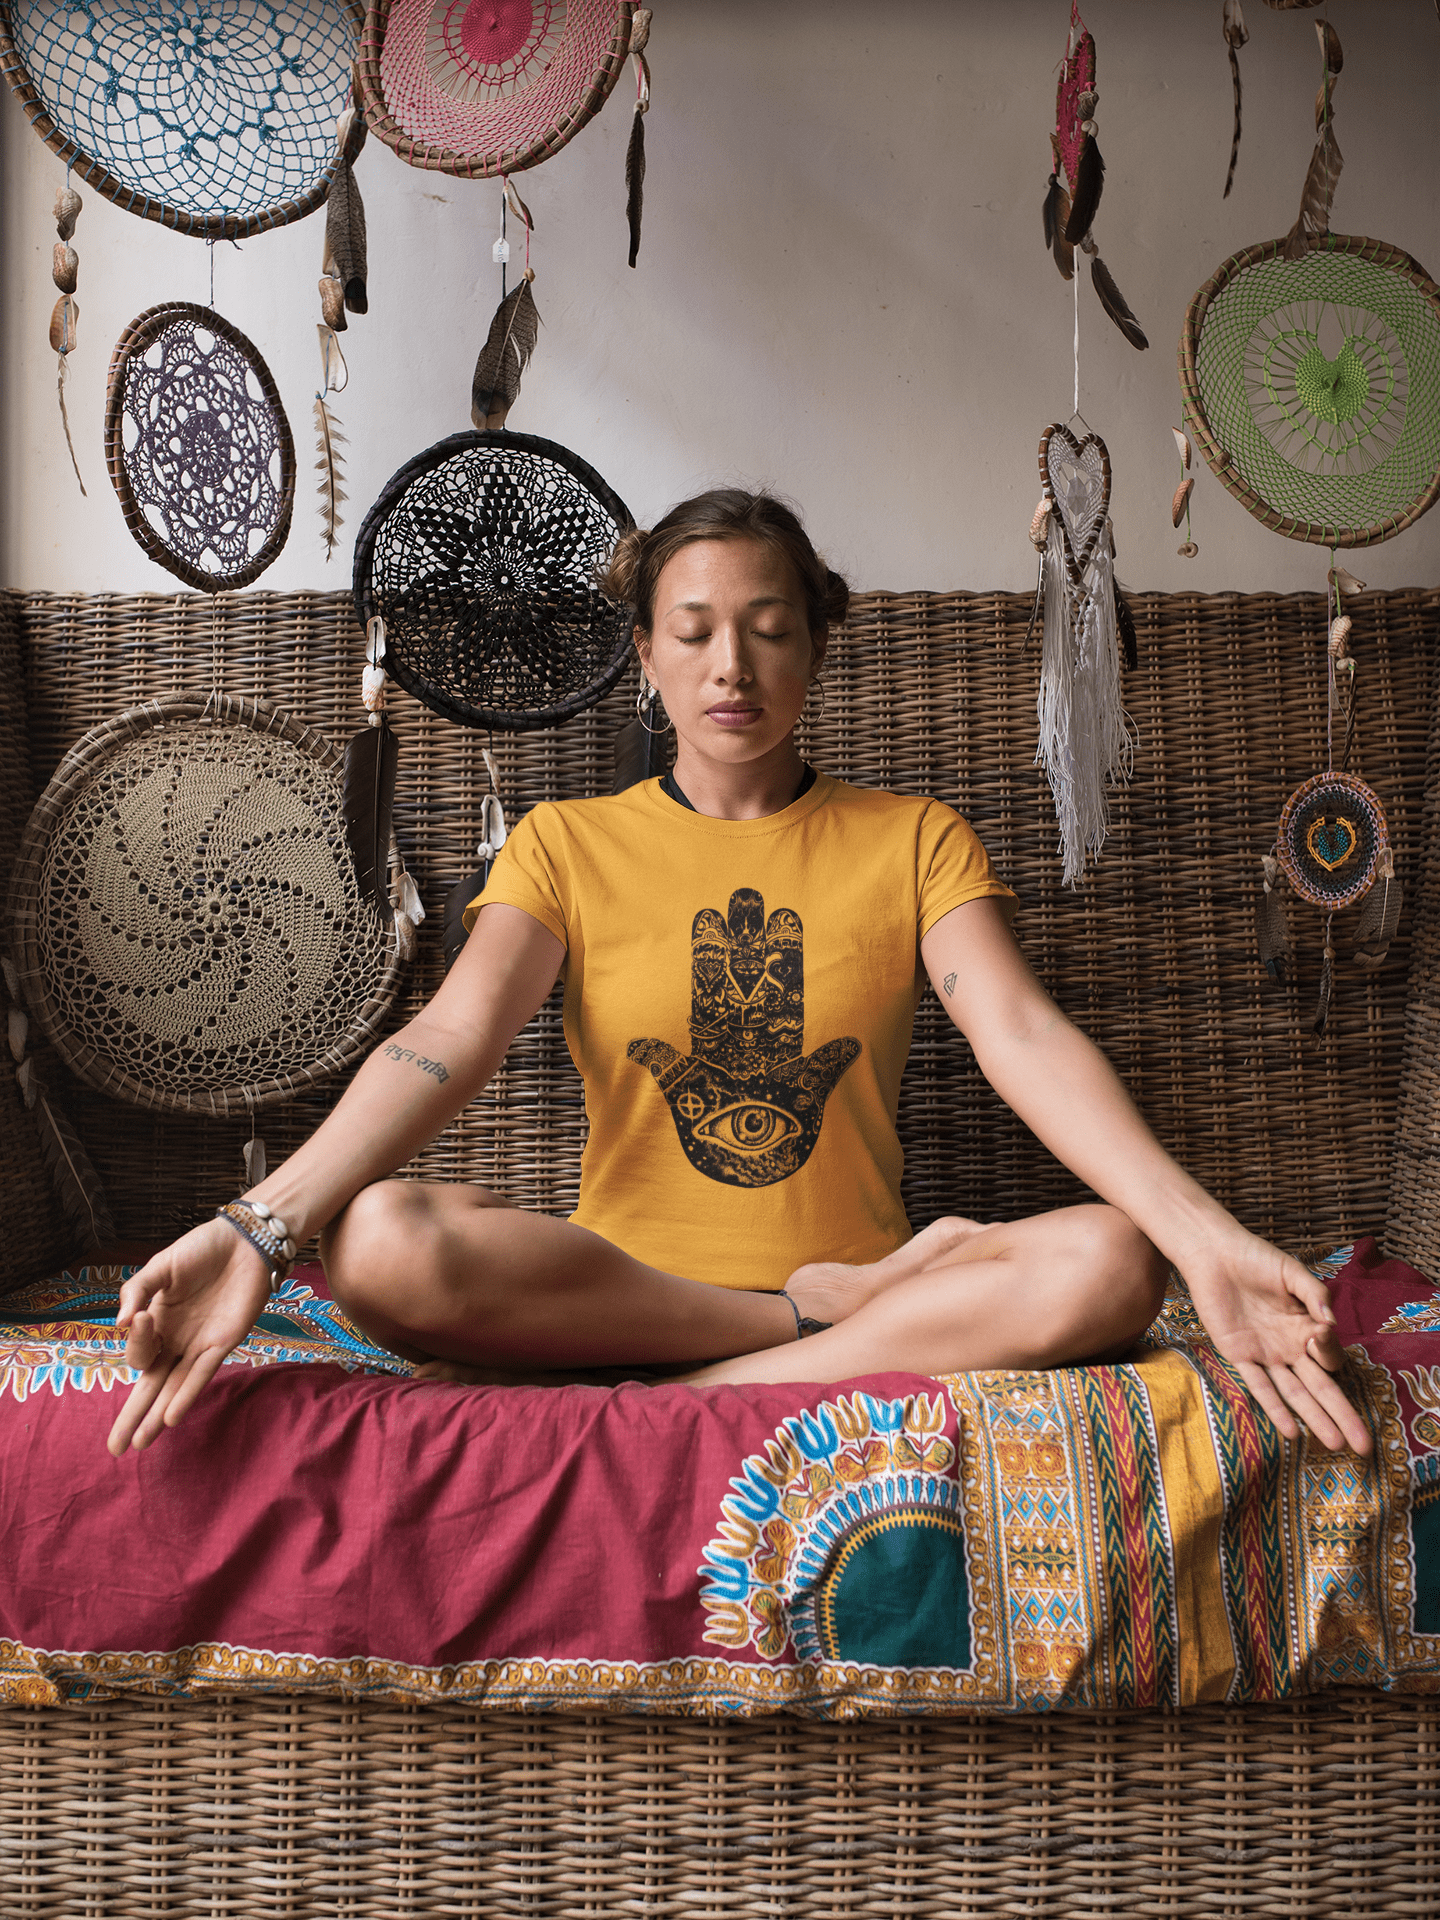 t-shirt-mockup-of-a-yoga-girl-surrounded-by-tribal-ornaments-26851